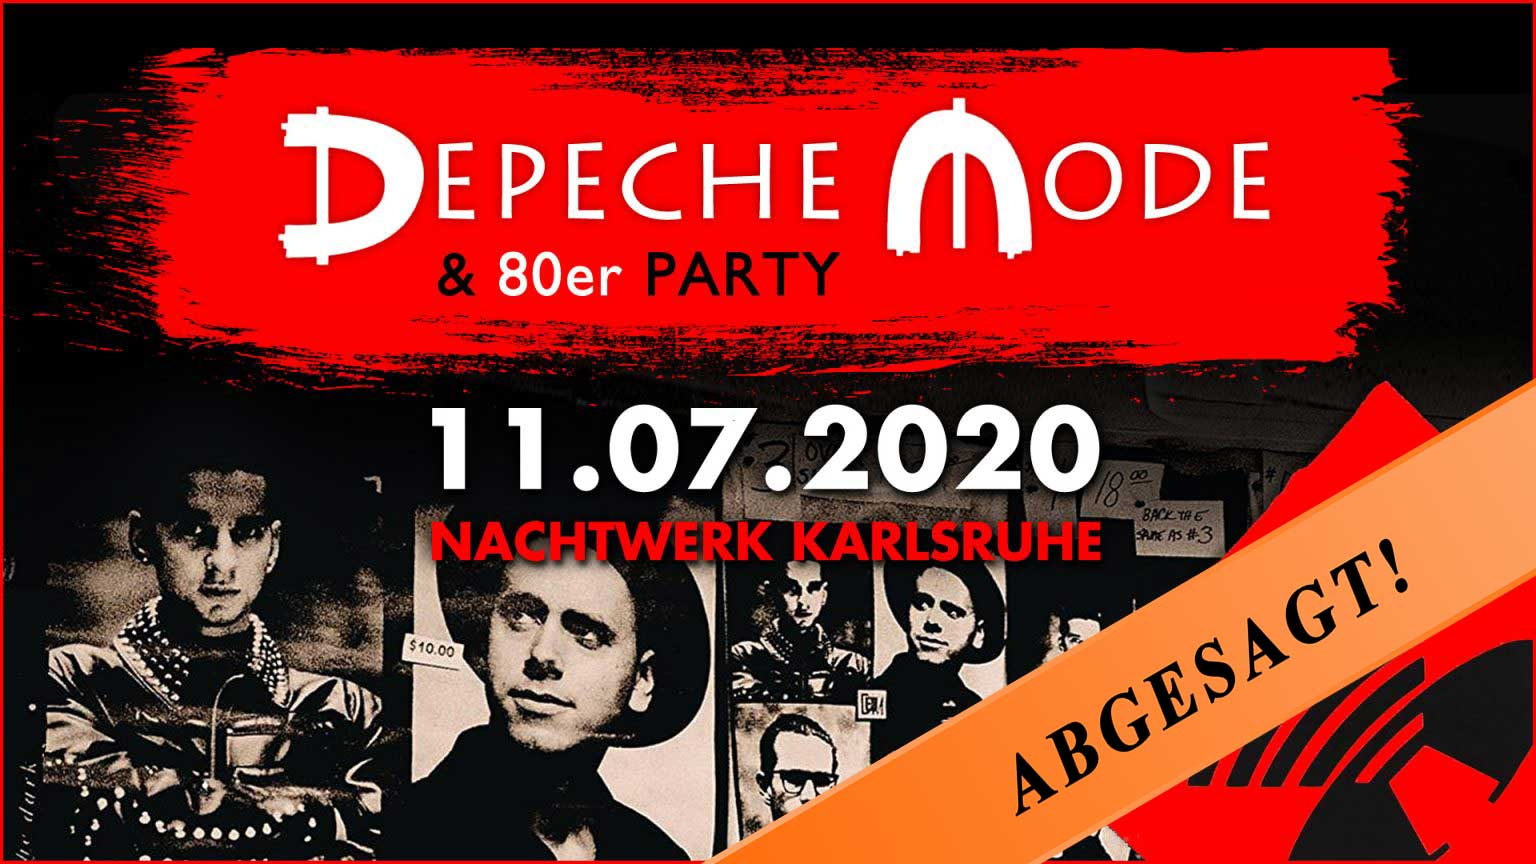 Depeche Mode & 80er Party